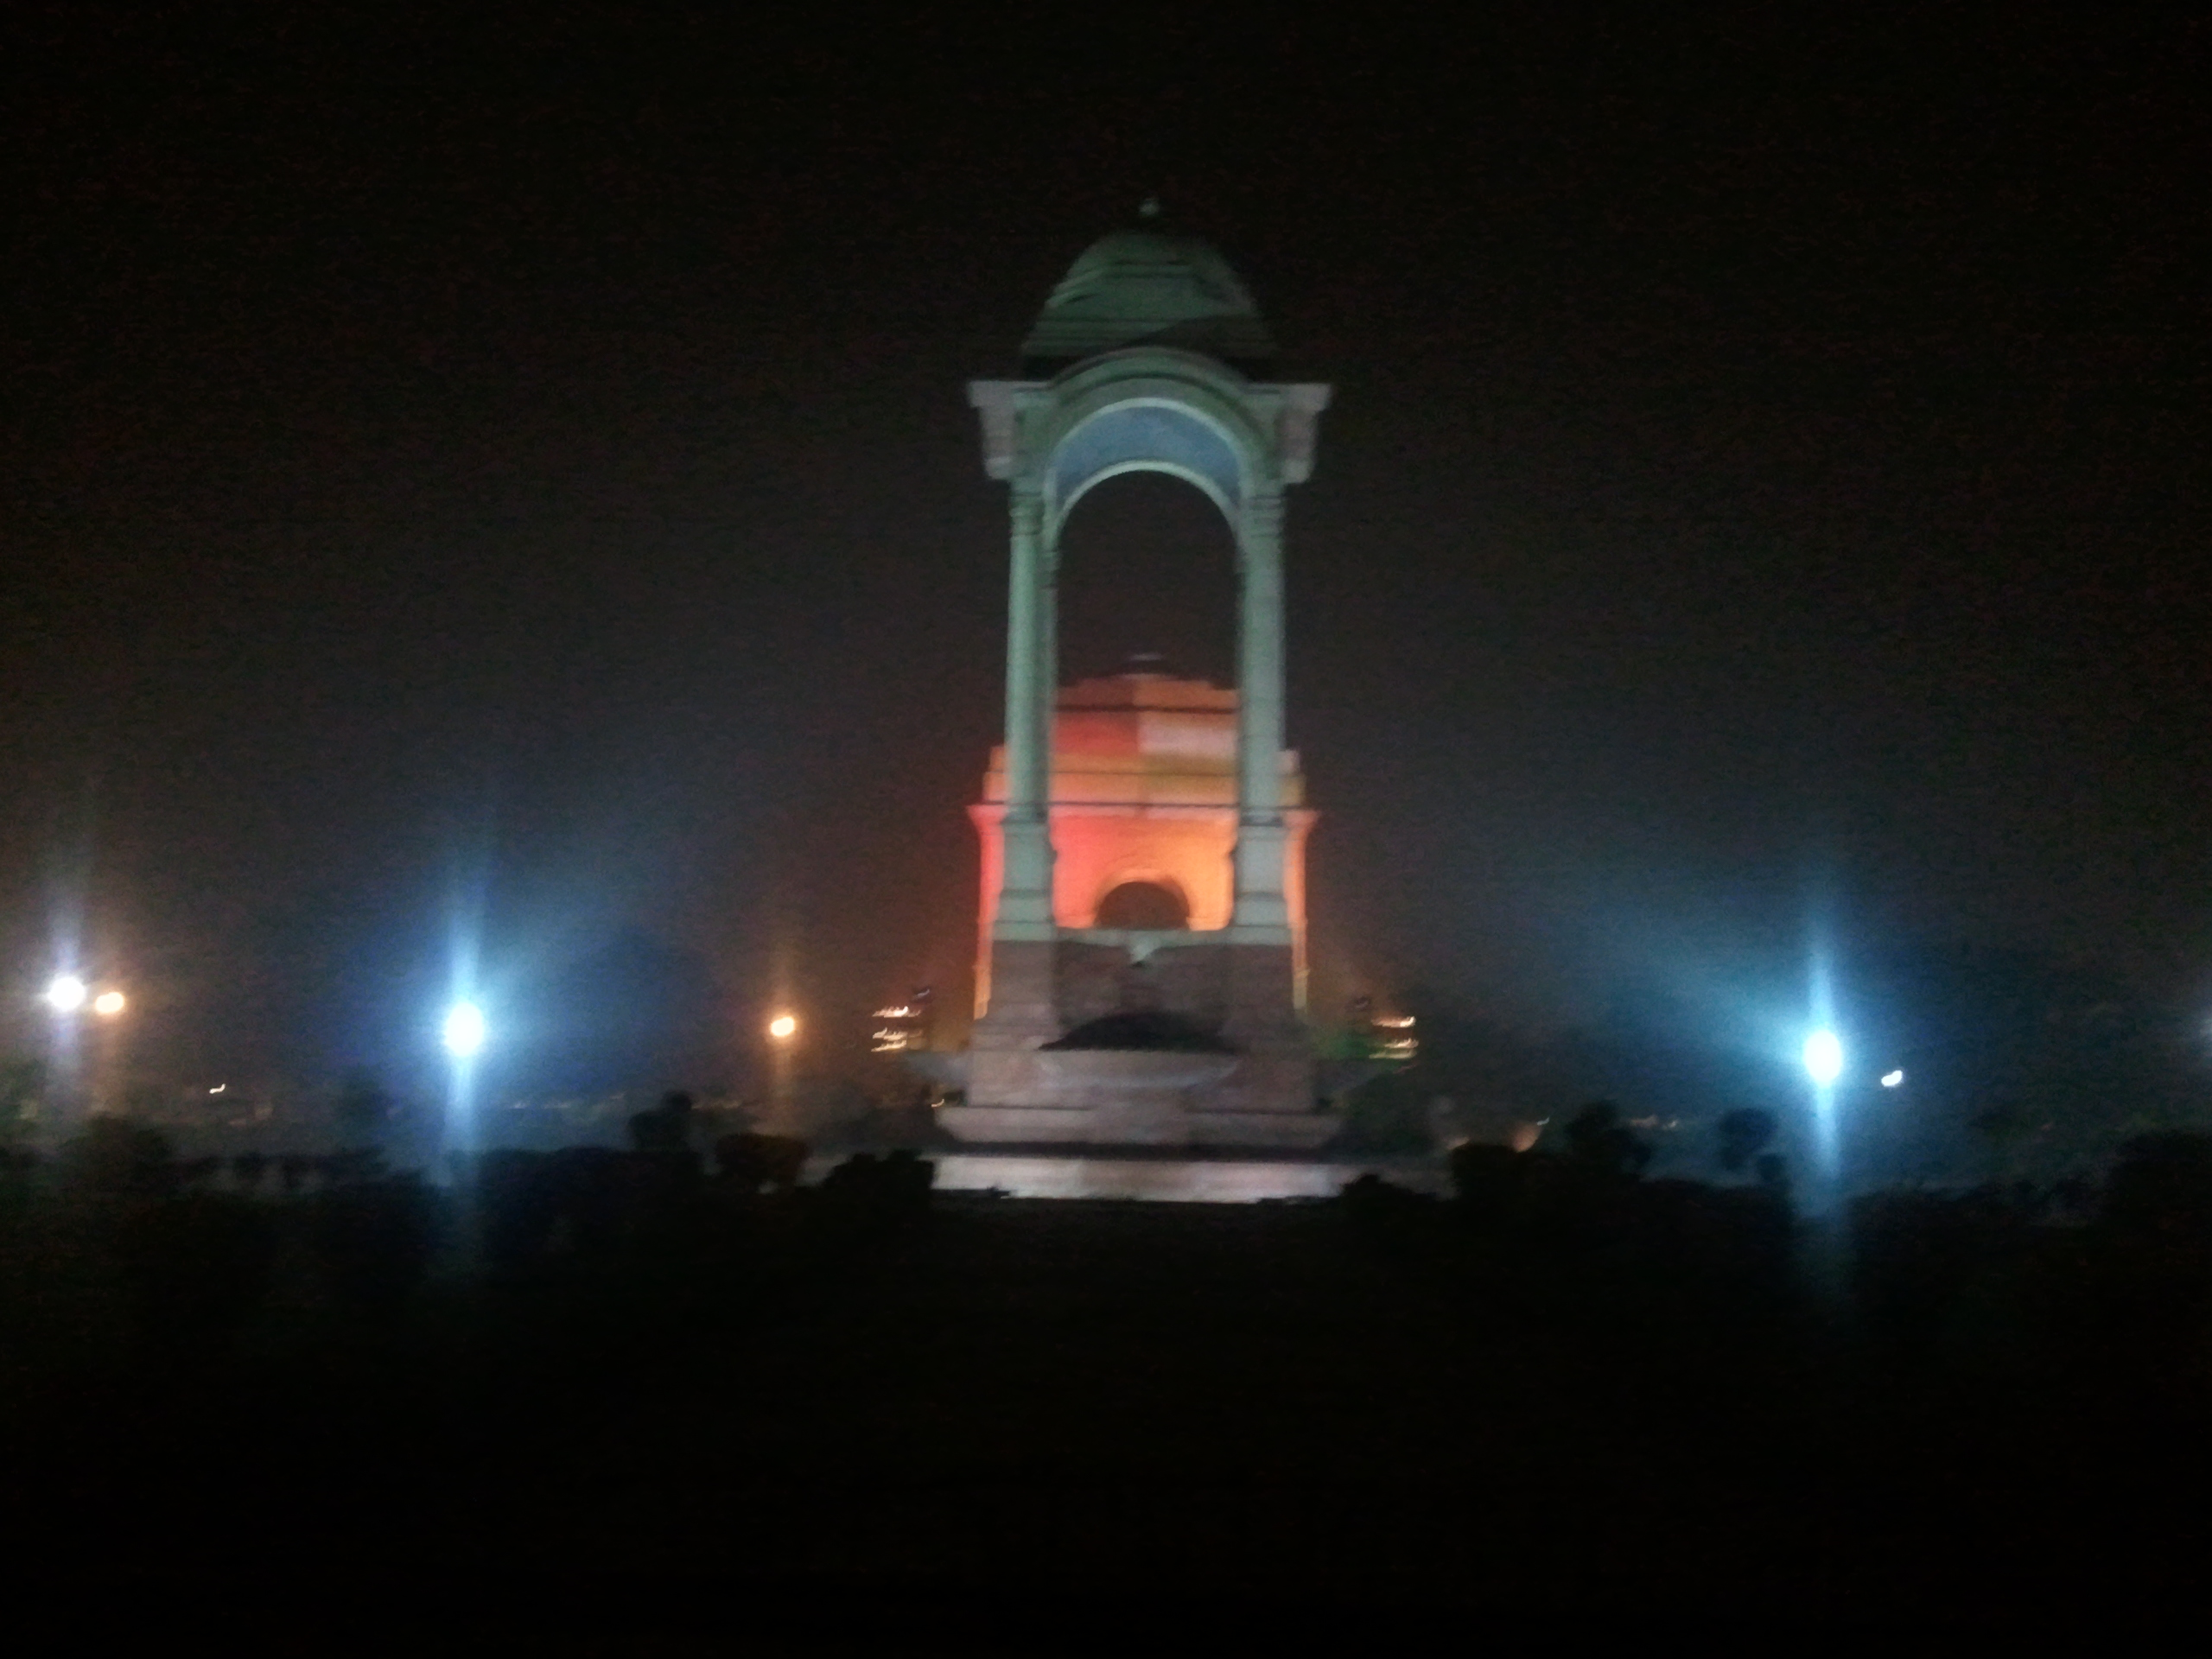 Fileindia gate and amar jawan jyoti new delhig wikimedia commons fileindia gate and amar jawan jyoti new delhig altavistaventures Choice Image